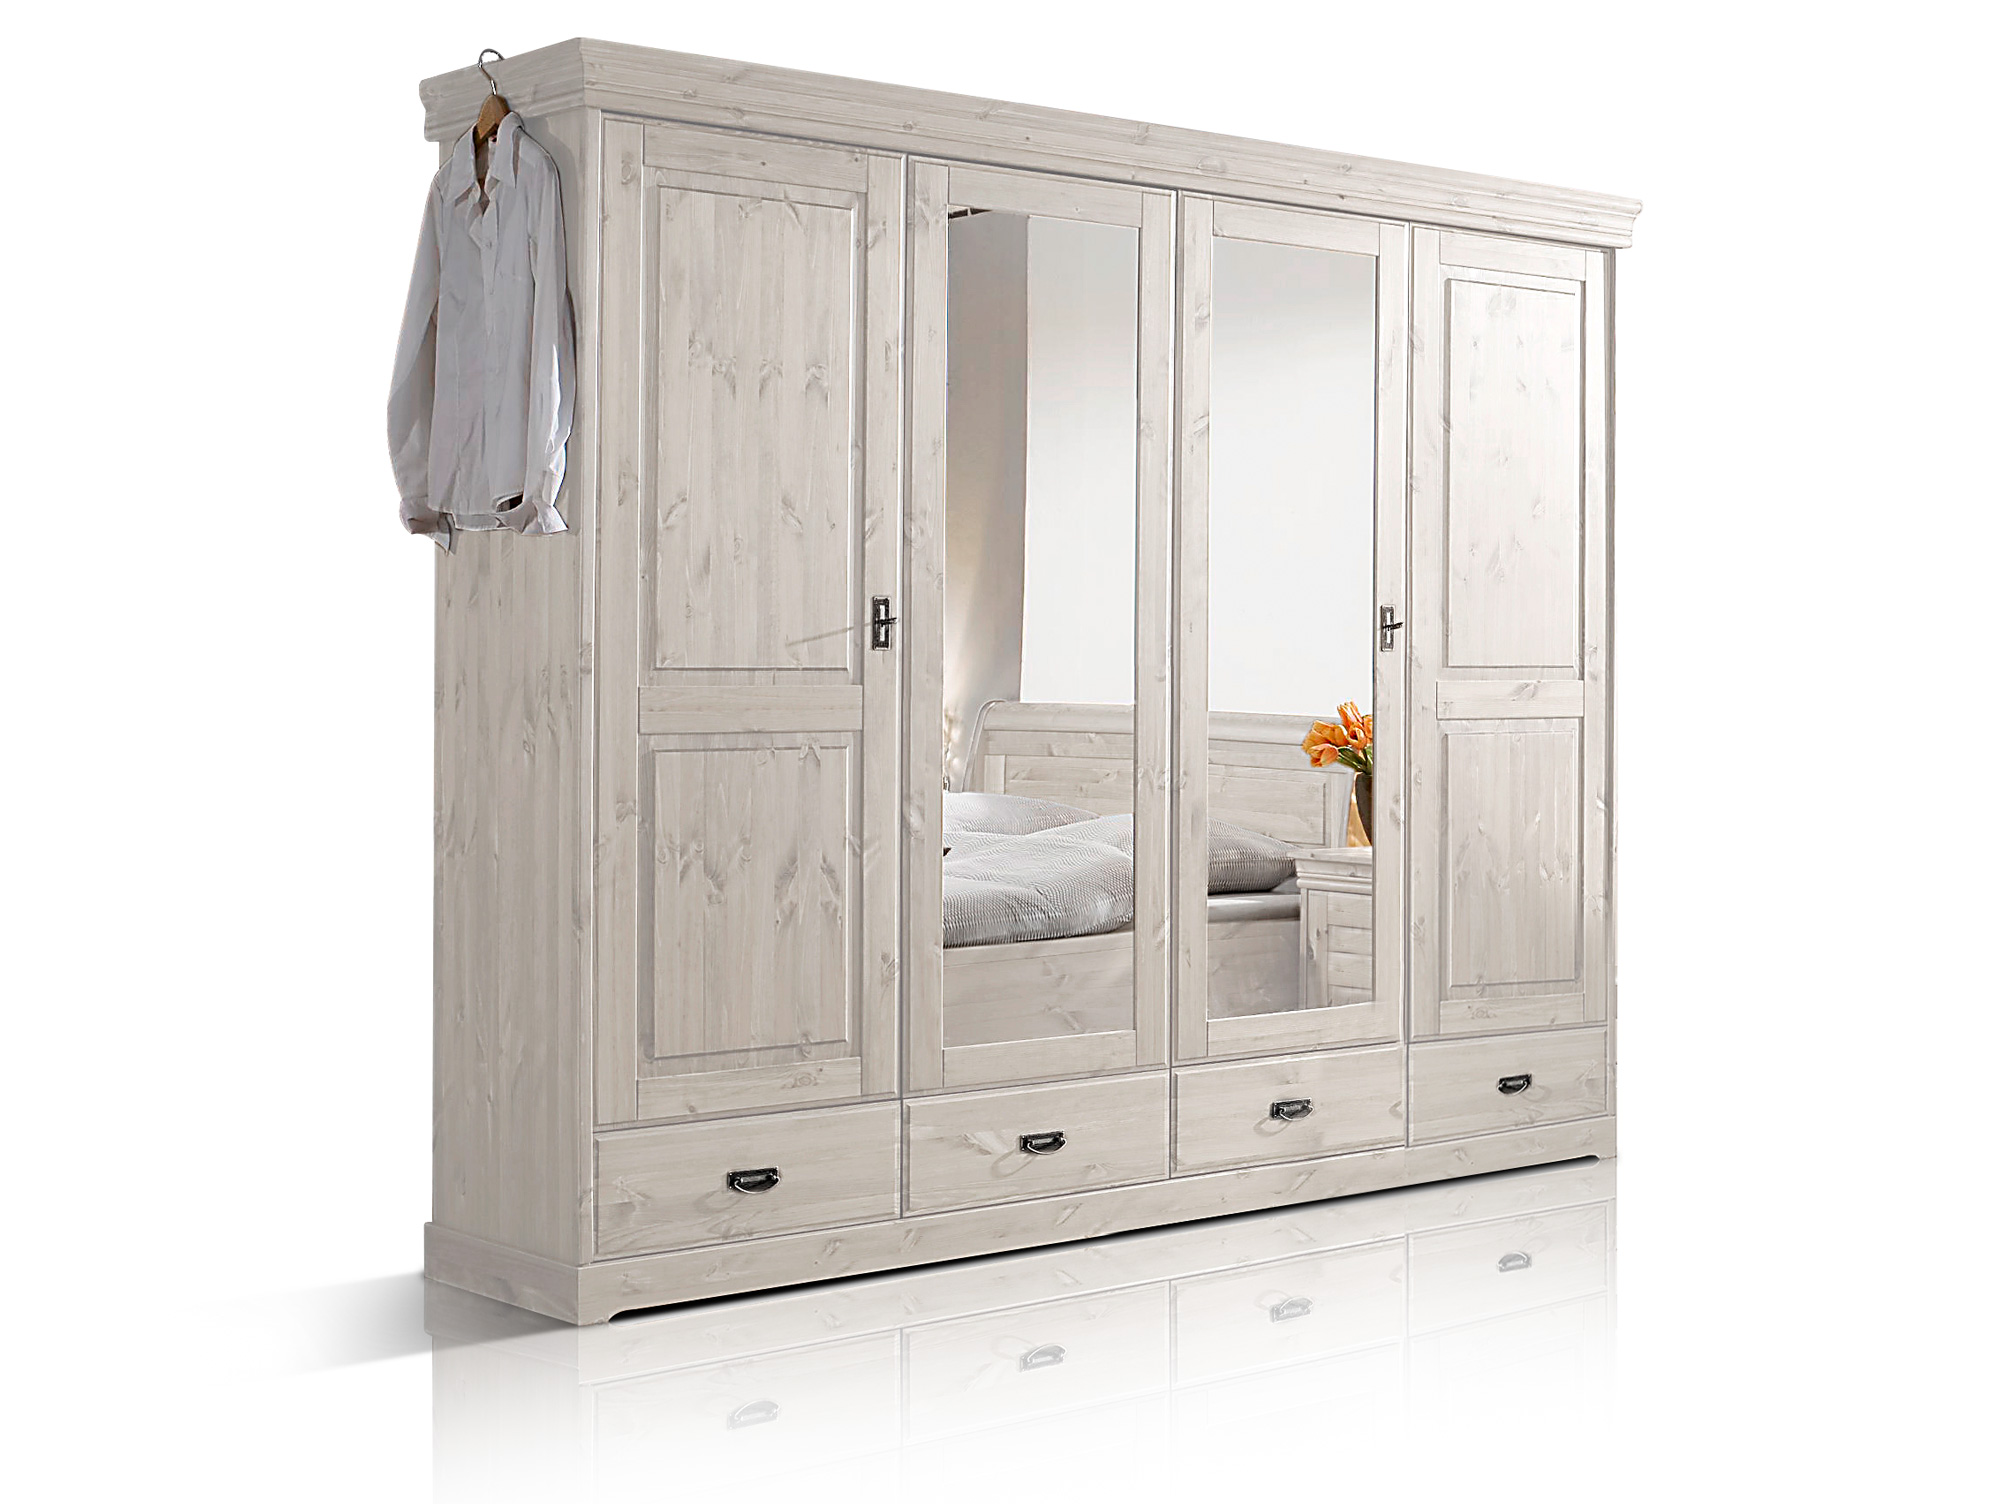 richard ii massivholz kleiderschrank kiefer 4 t rig kiefer weiss. Black Bedroom Furniture Sets. Home Design Ideas